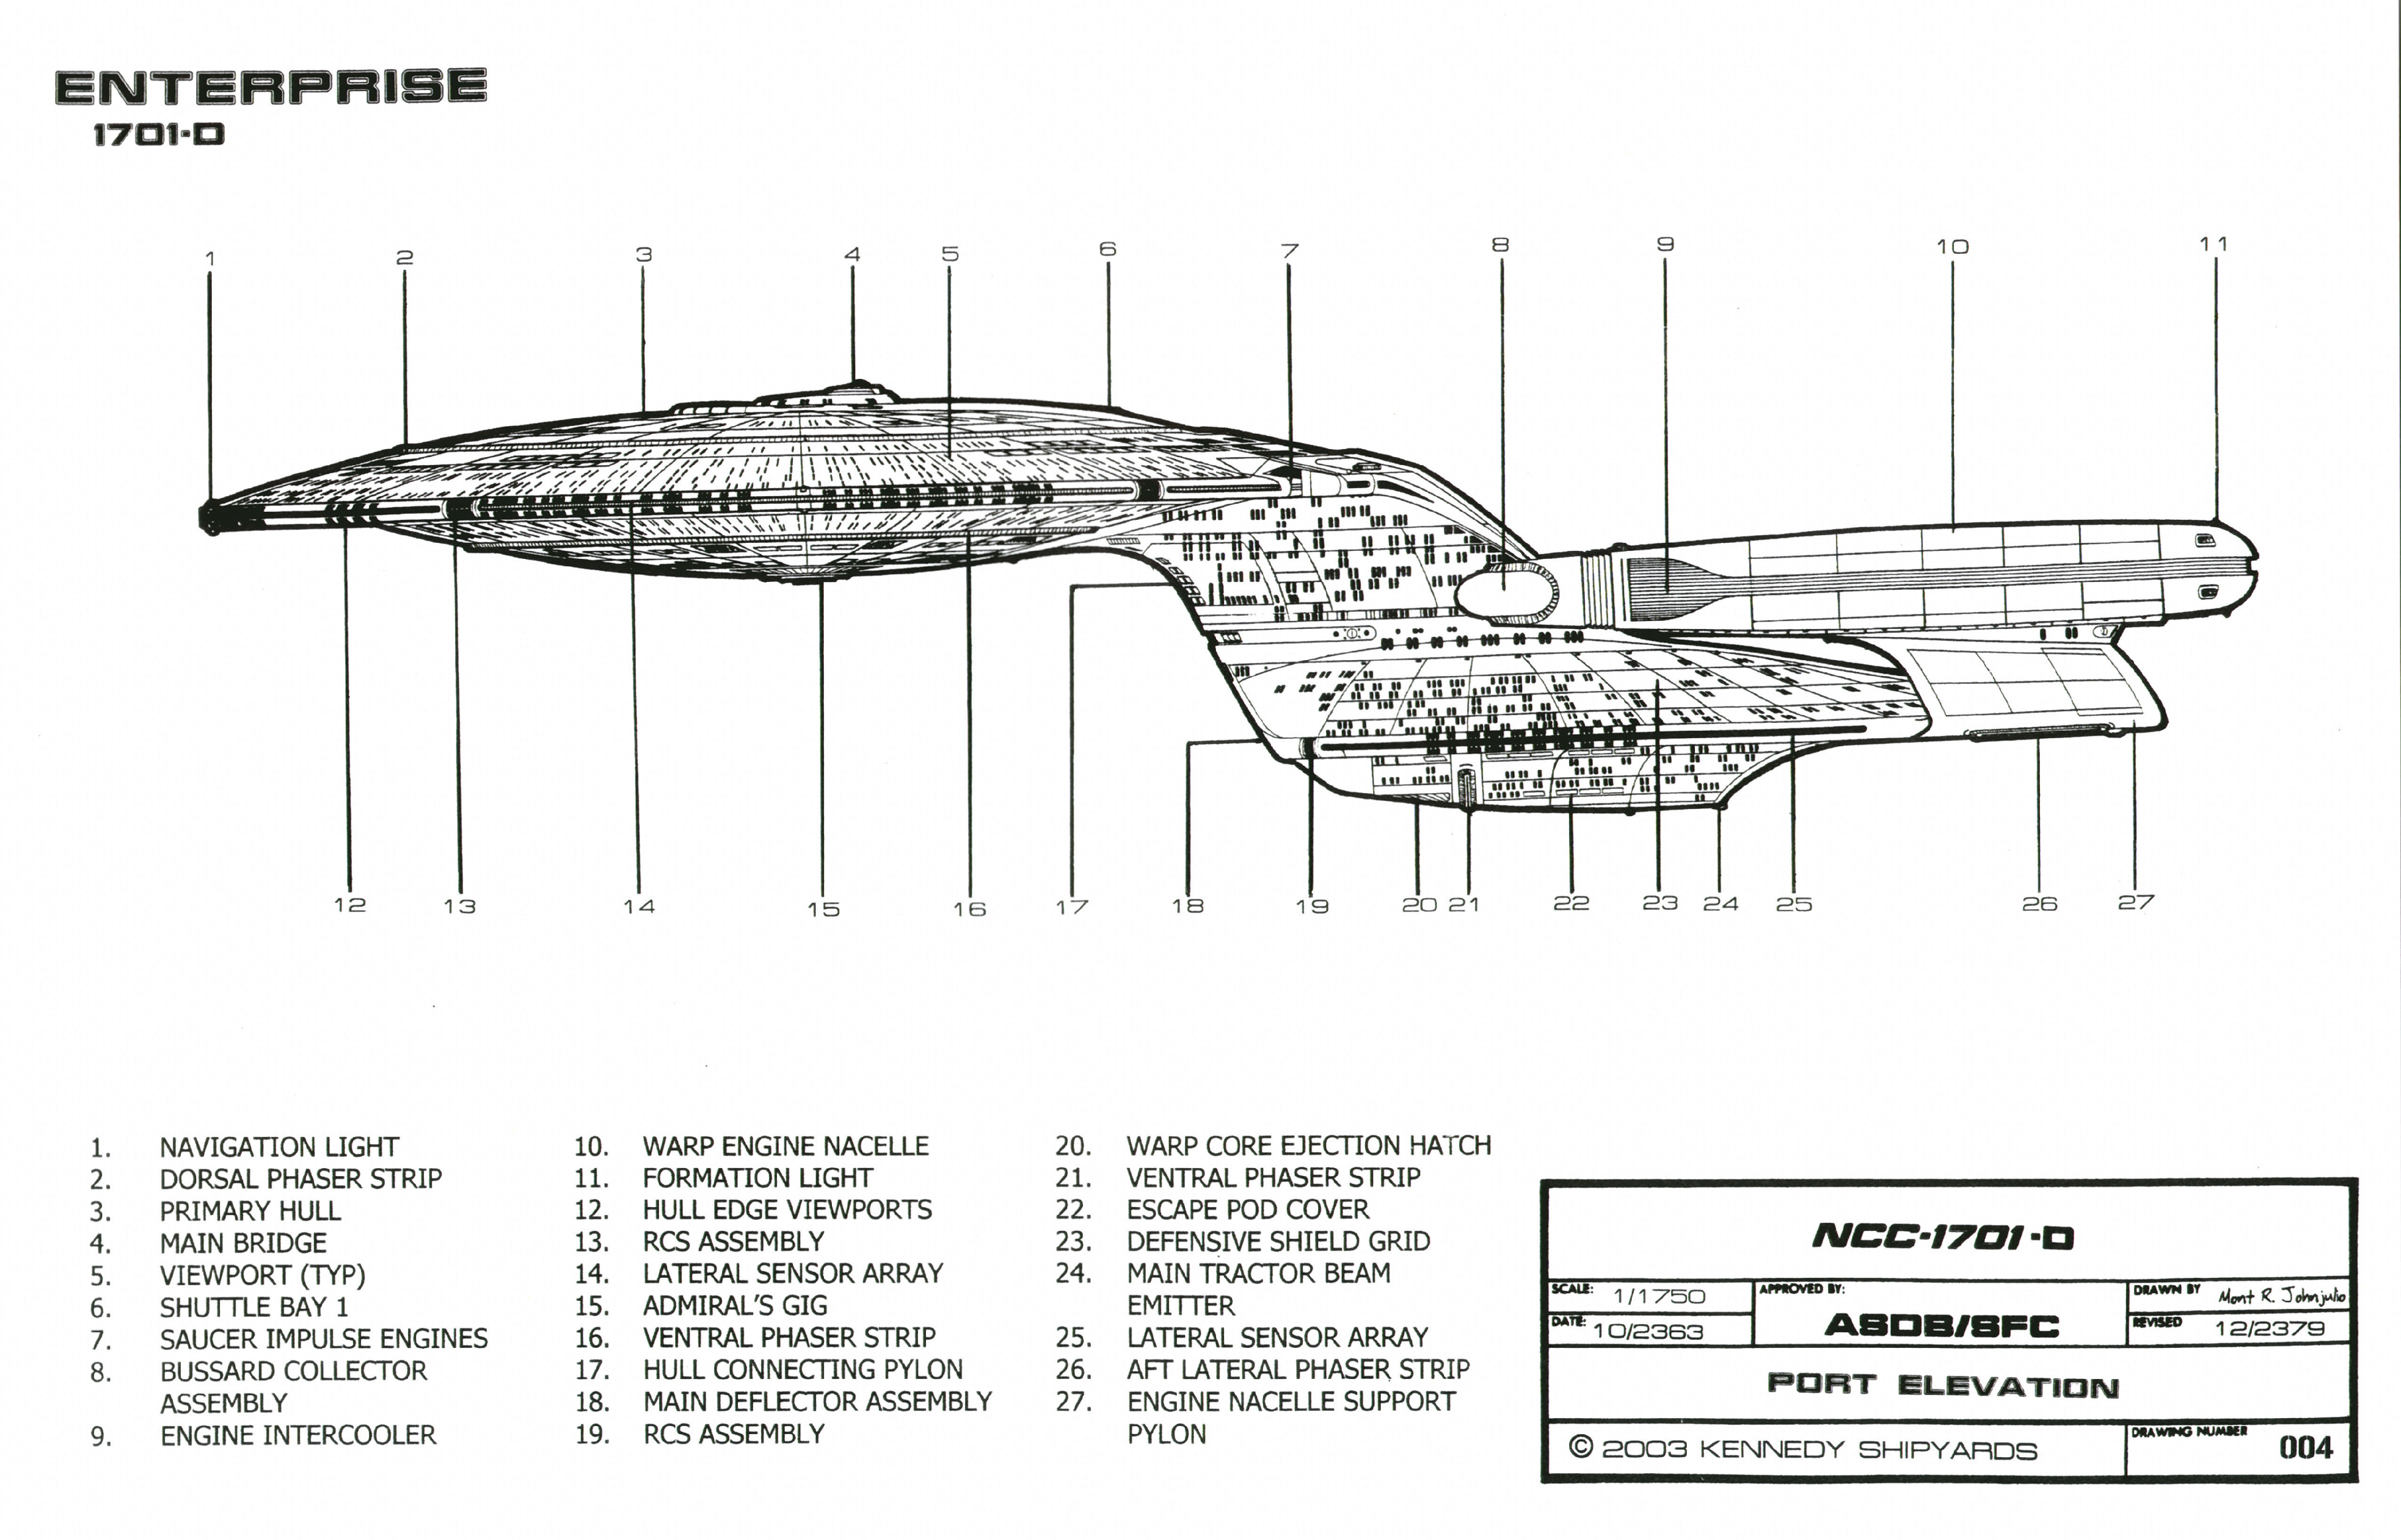 icars schematic of saucer section of u s s  enterprise ncc